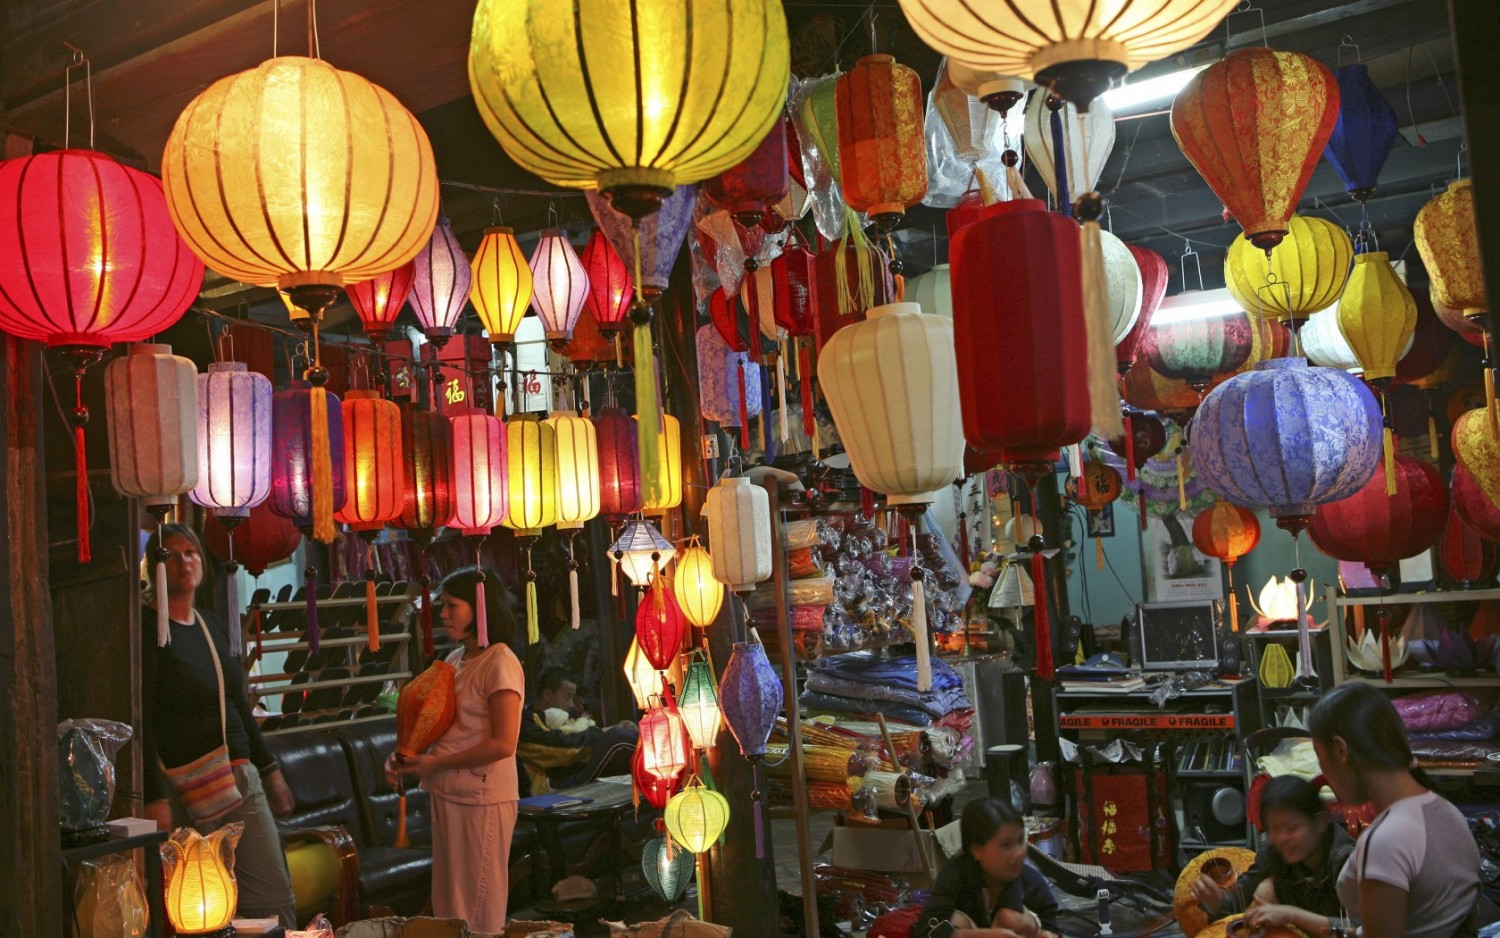 Hoi An's full-moon festival, one of the 25 world's most amazing experiences